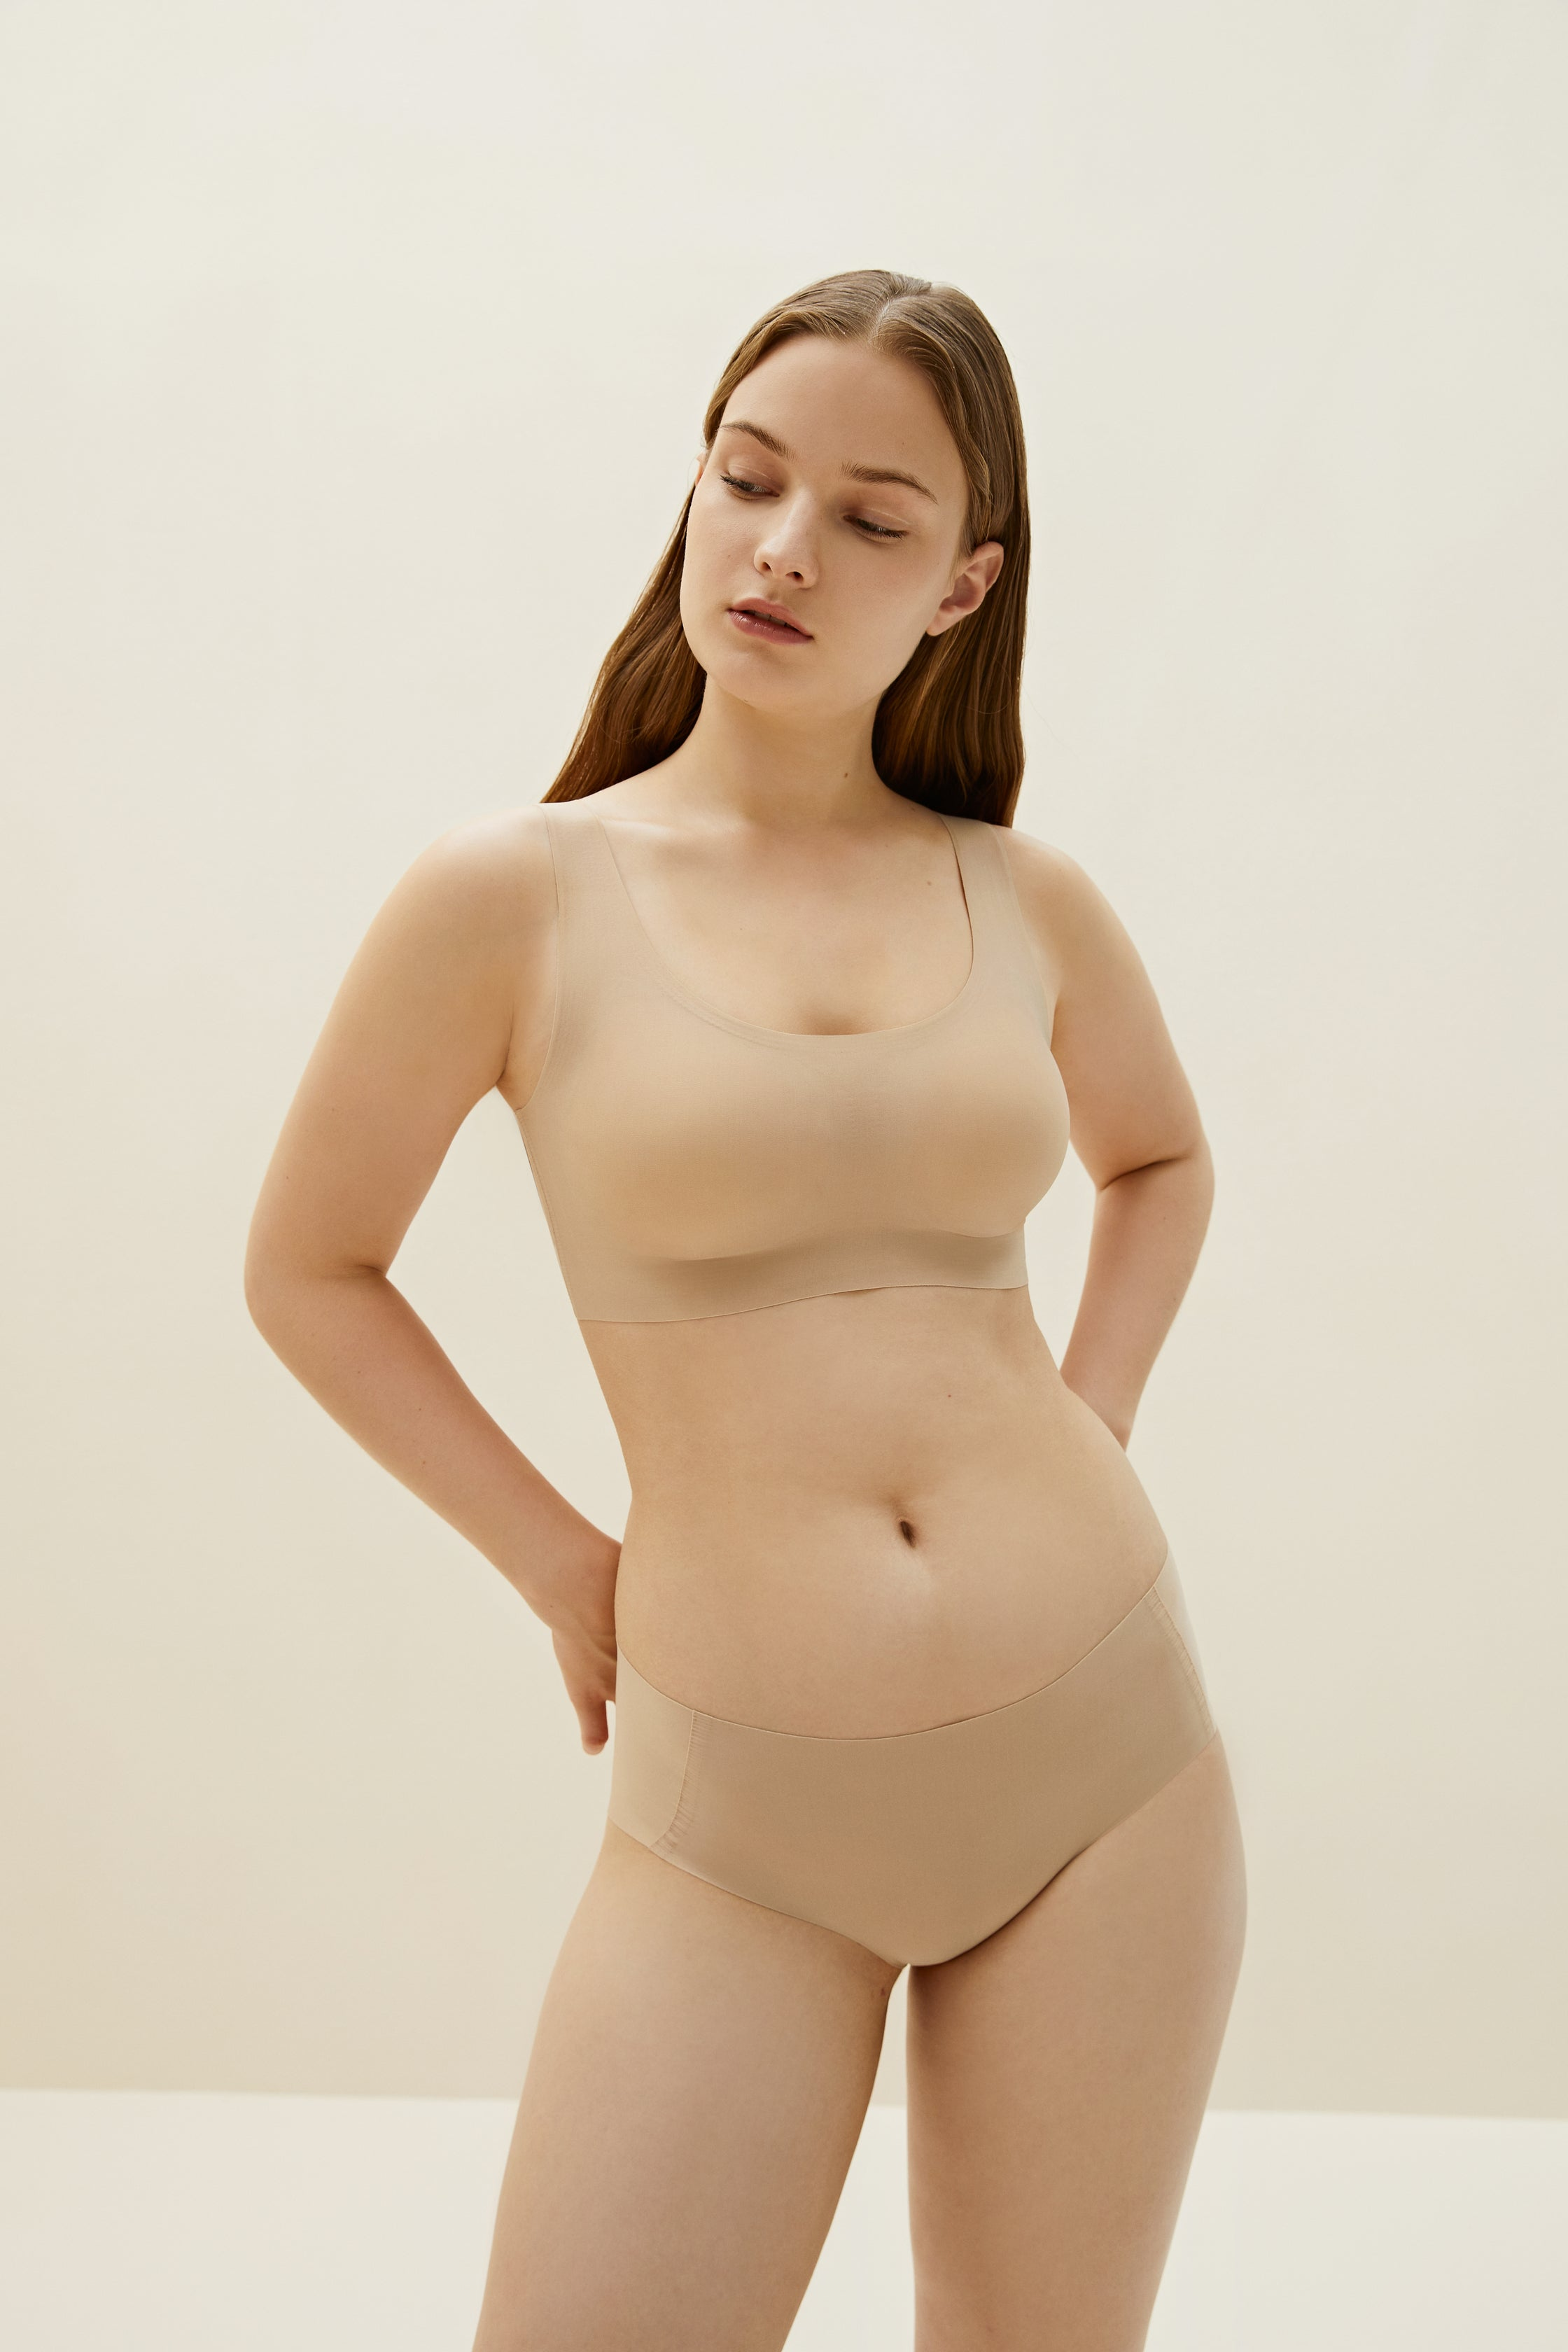 Model wearing NEIWAI's Barely Zero bra and brief set in nude.